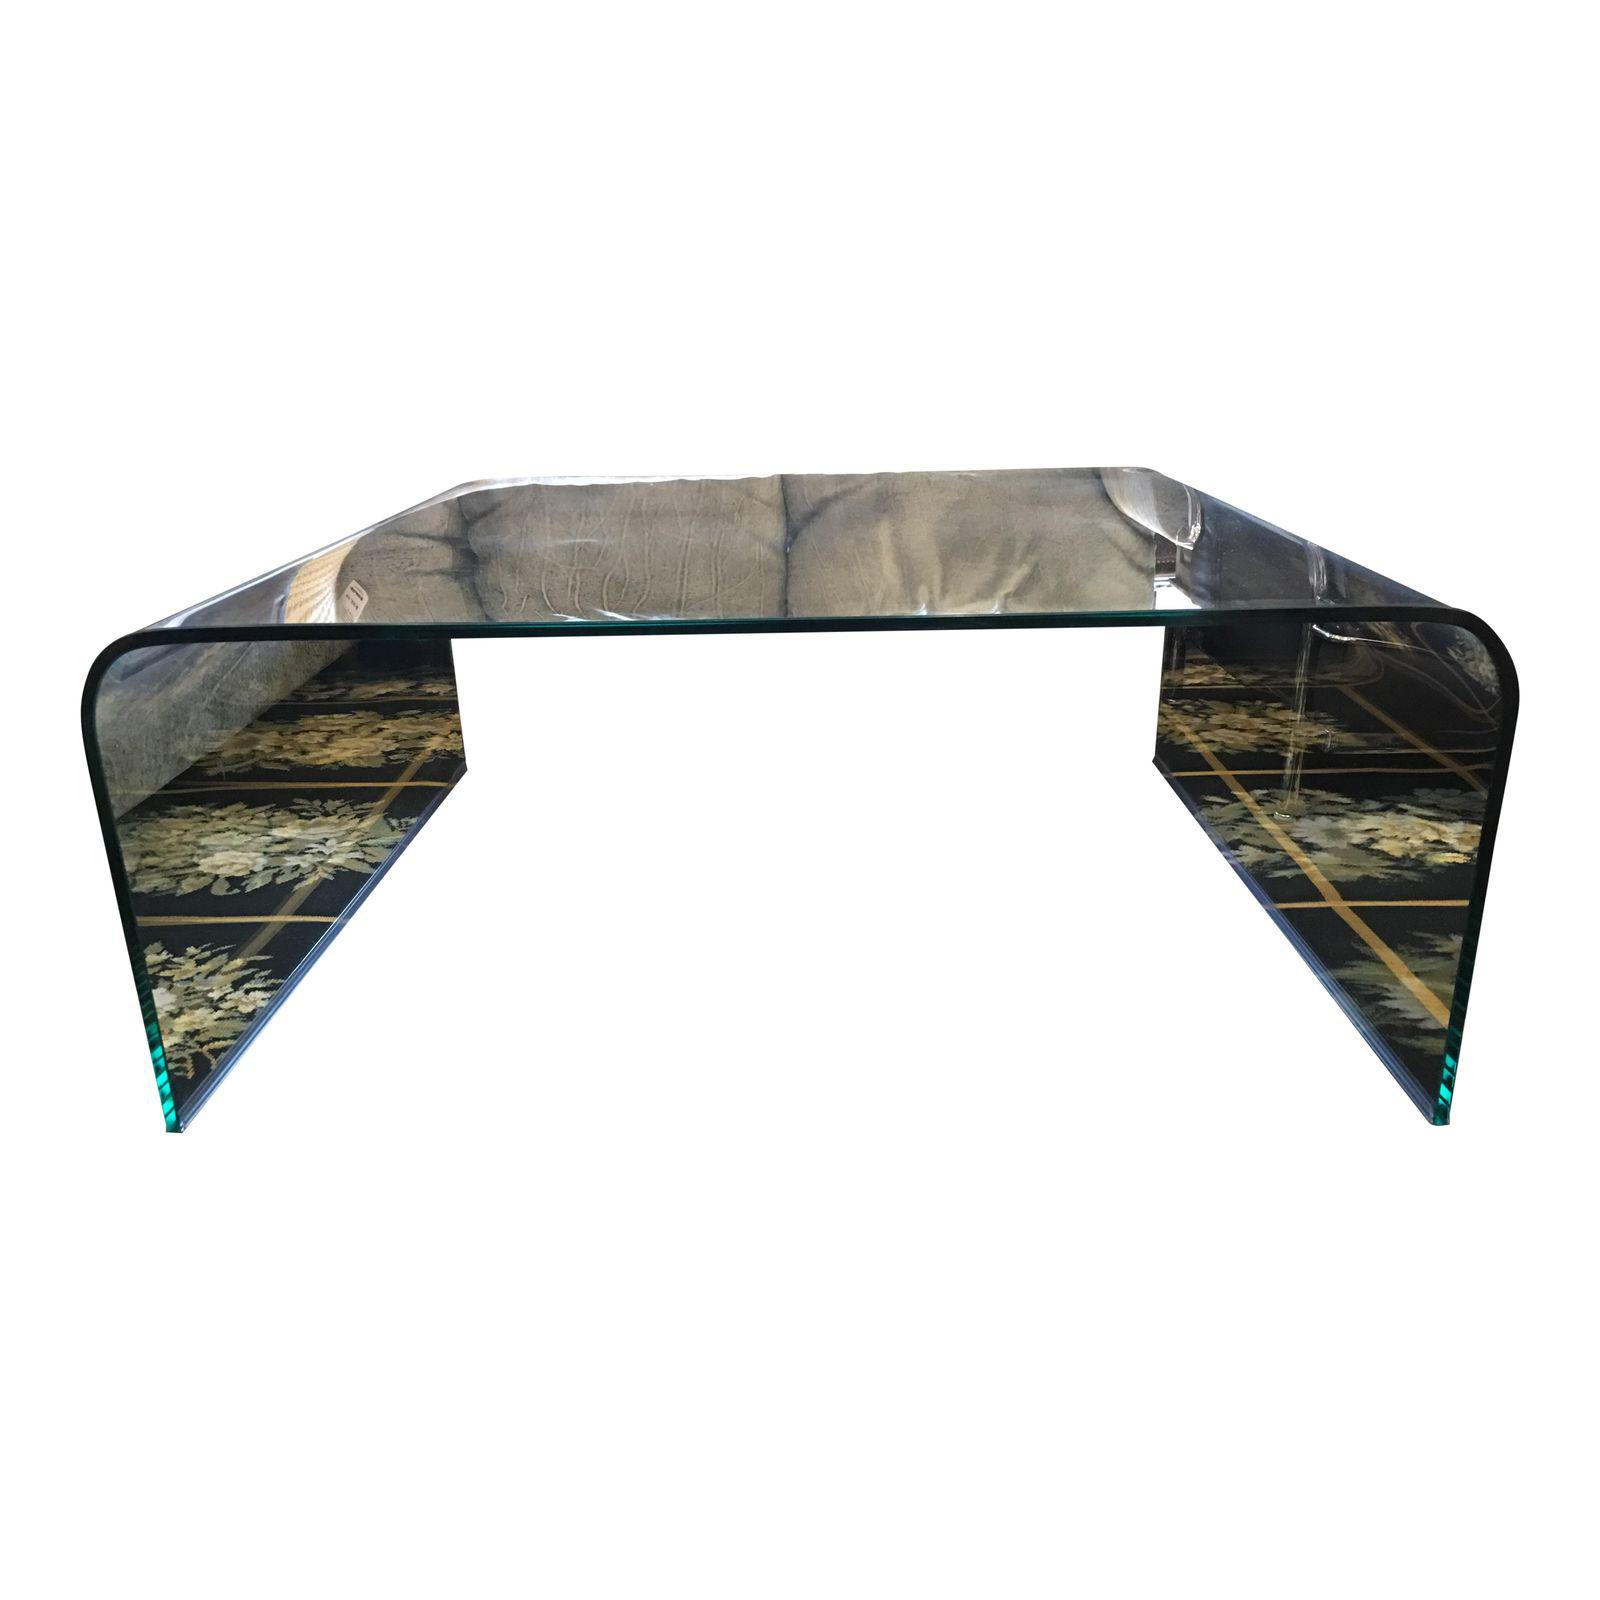 Square Glass Waterfall Coffee Table 2702 – Design Plus Gallery Inside Most Current Square Waterfall Coffee Tables (View 17 of 20)